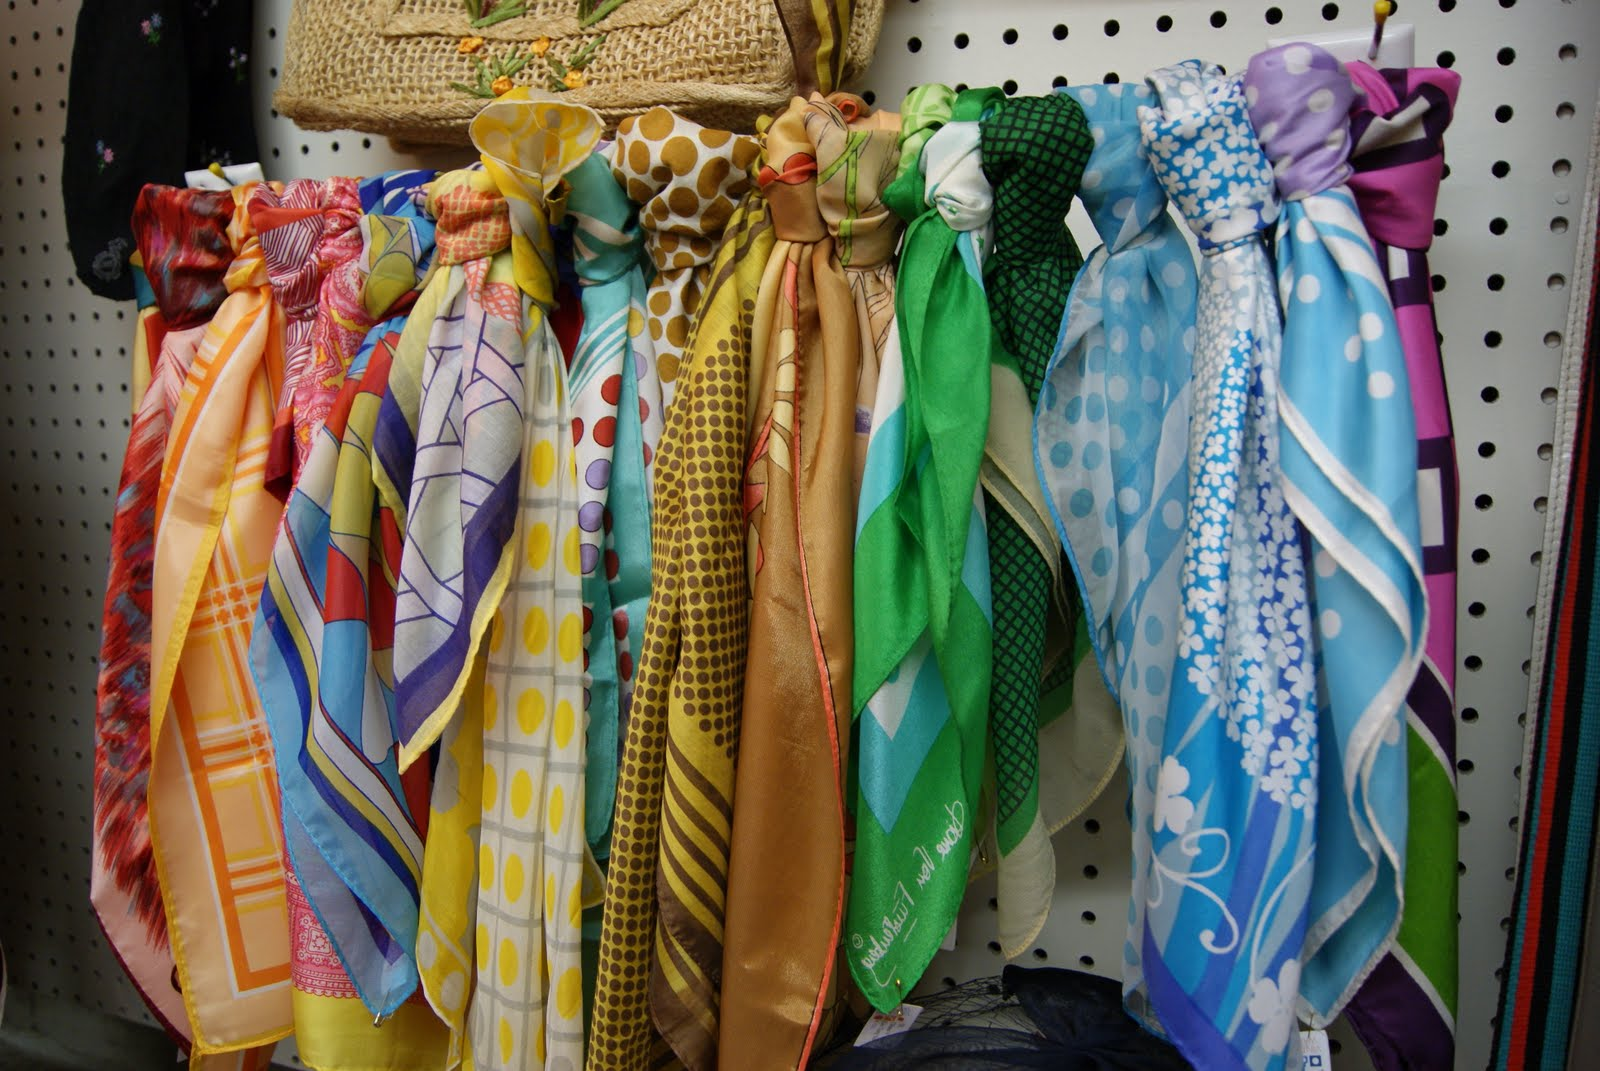 The scarf material highly influences how you can wear it. Various fabrics possess unique characteristics and advantages. Popular materials to look for when buying women's fashion scarves include wool, cashmere, and silk.